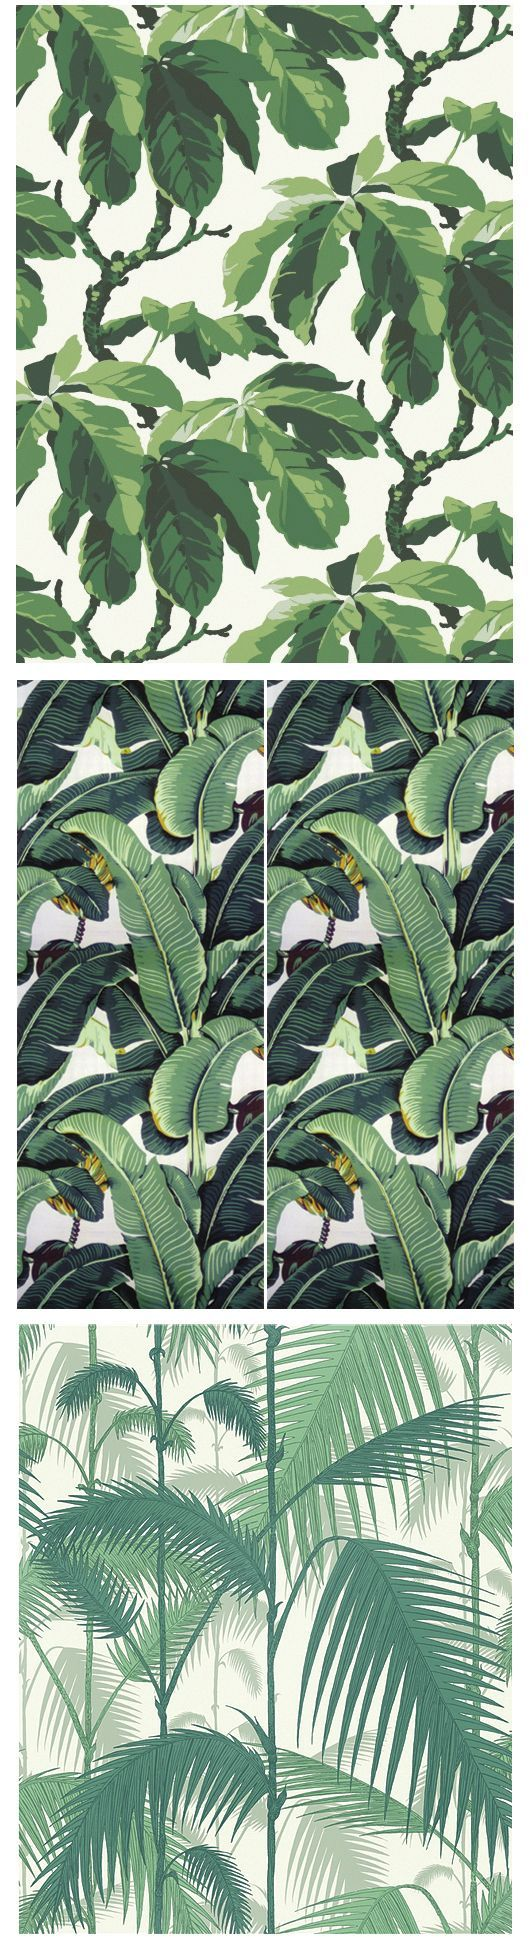 Boråstapeters Oxford, Martinique's Beverly Hills Wallpaper och Cole & Sons Palm Jungle